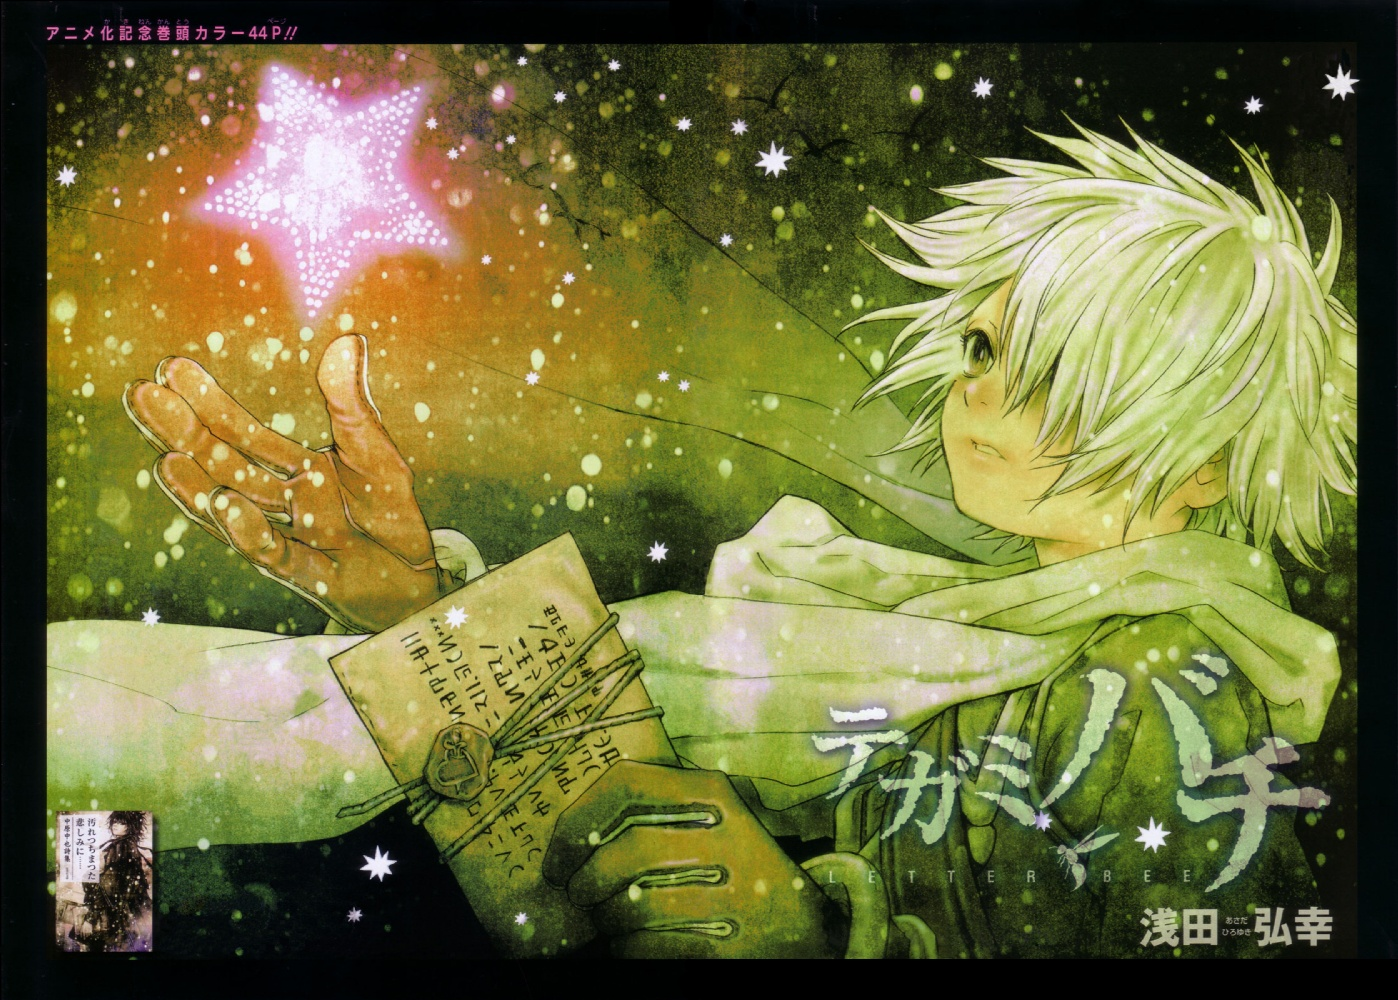 Cute Boy Wallpapers For Desktop Letter Bee Reverse Review Anime Evo